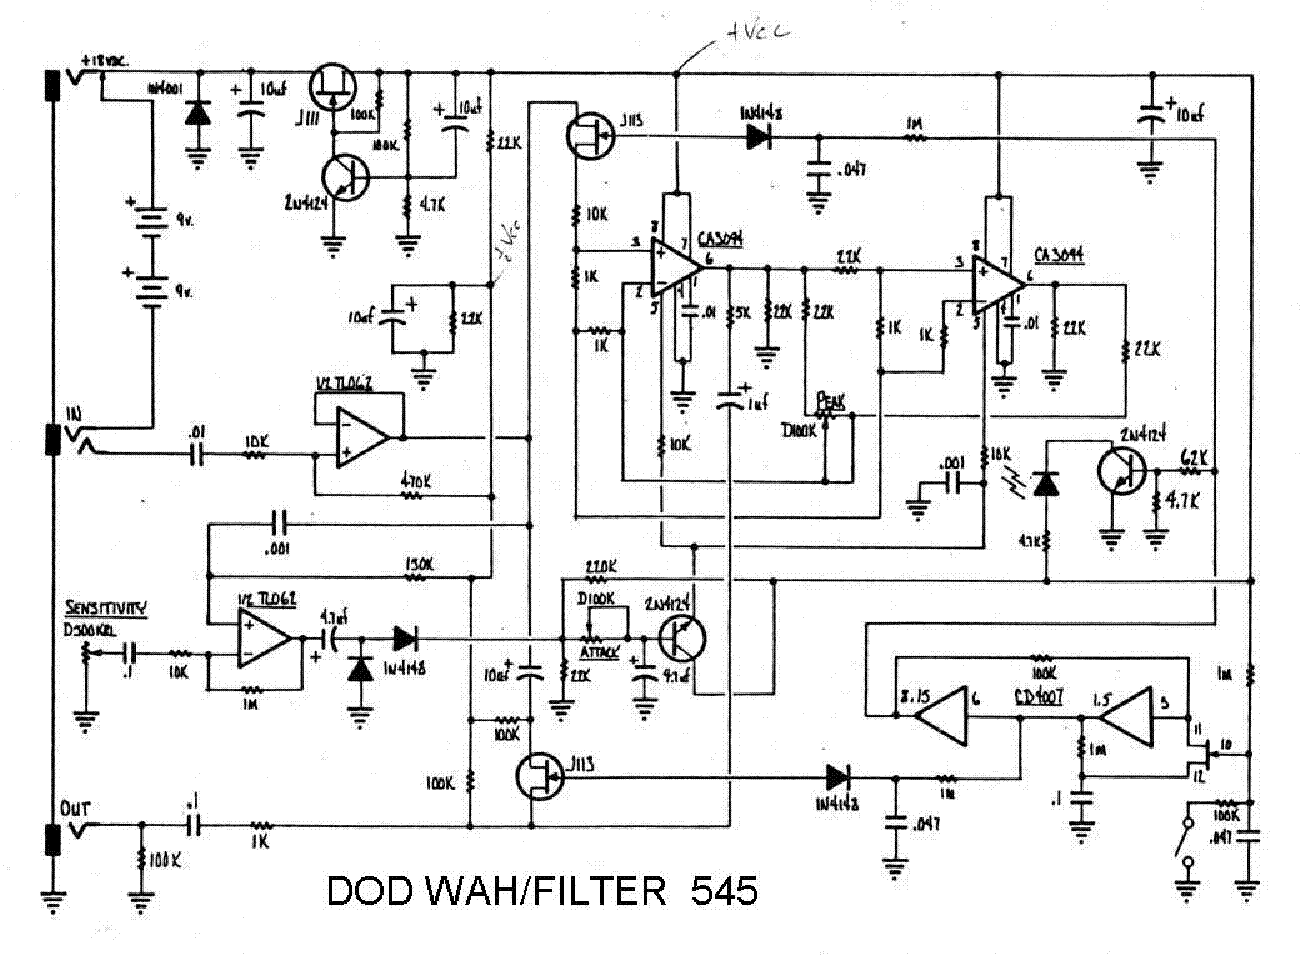 Dod Fx 53 Wiring Diagram Electrical 250 Classic Tube Sch Service Manual Download Schematics Dan Armstrong